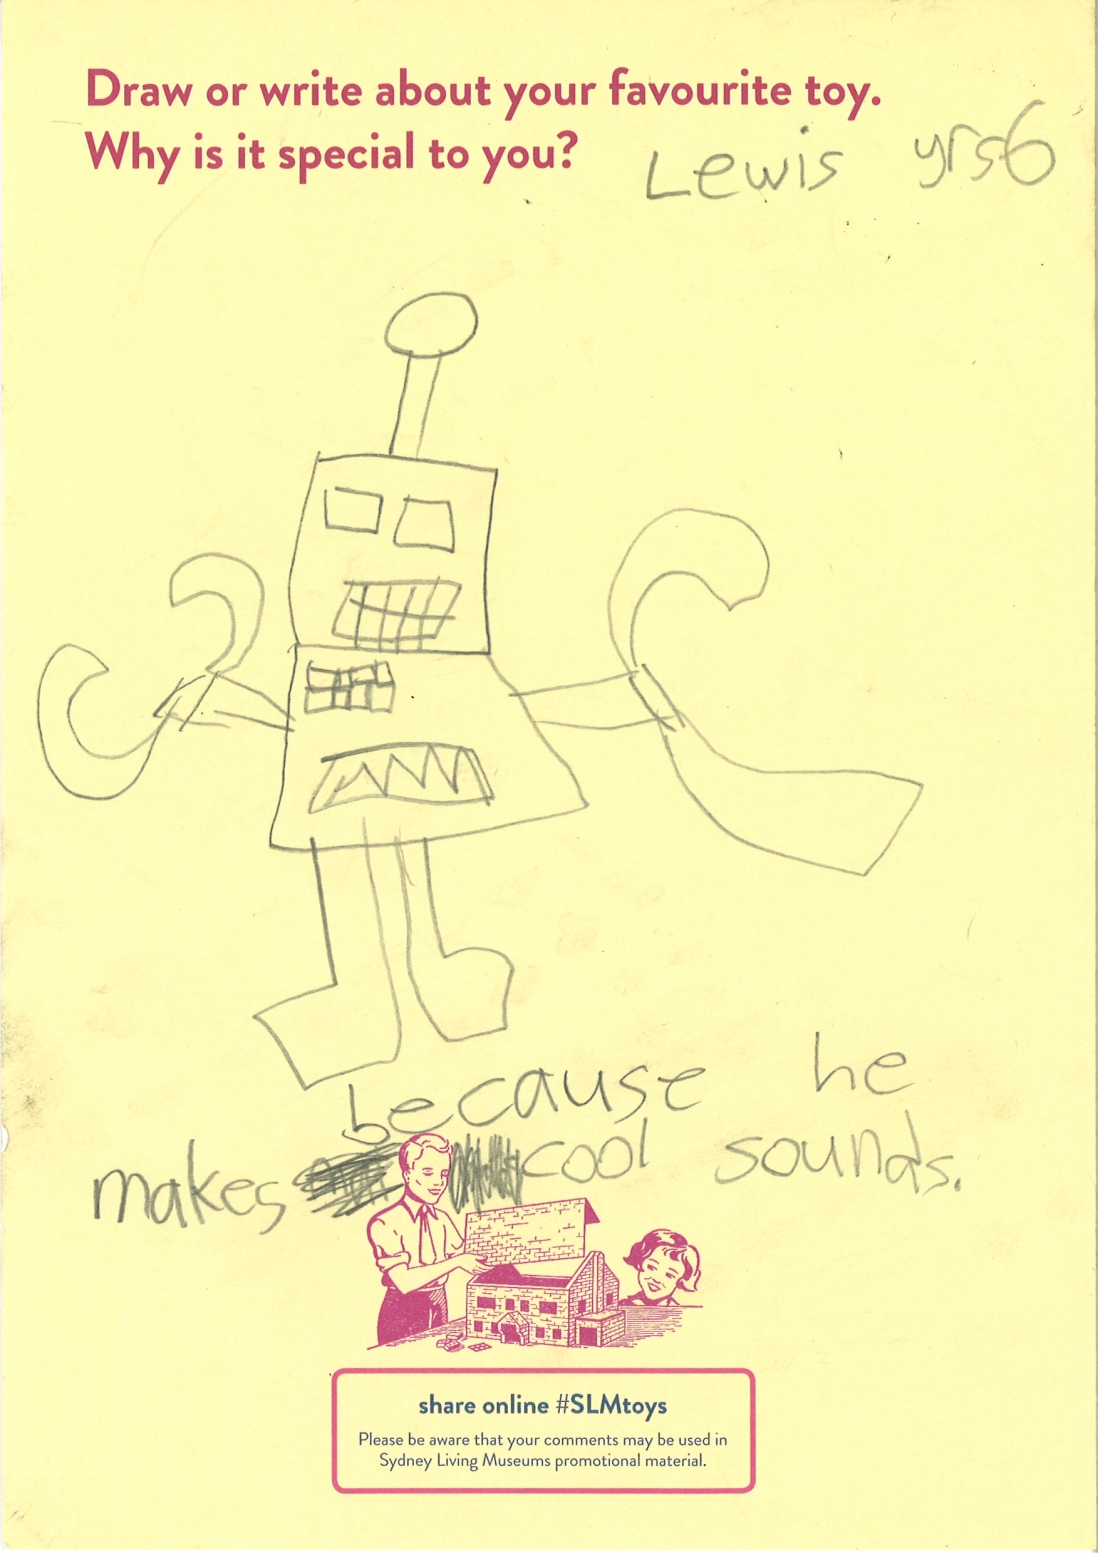 A childs drawing of a robot with large hands